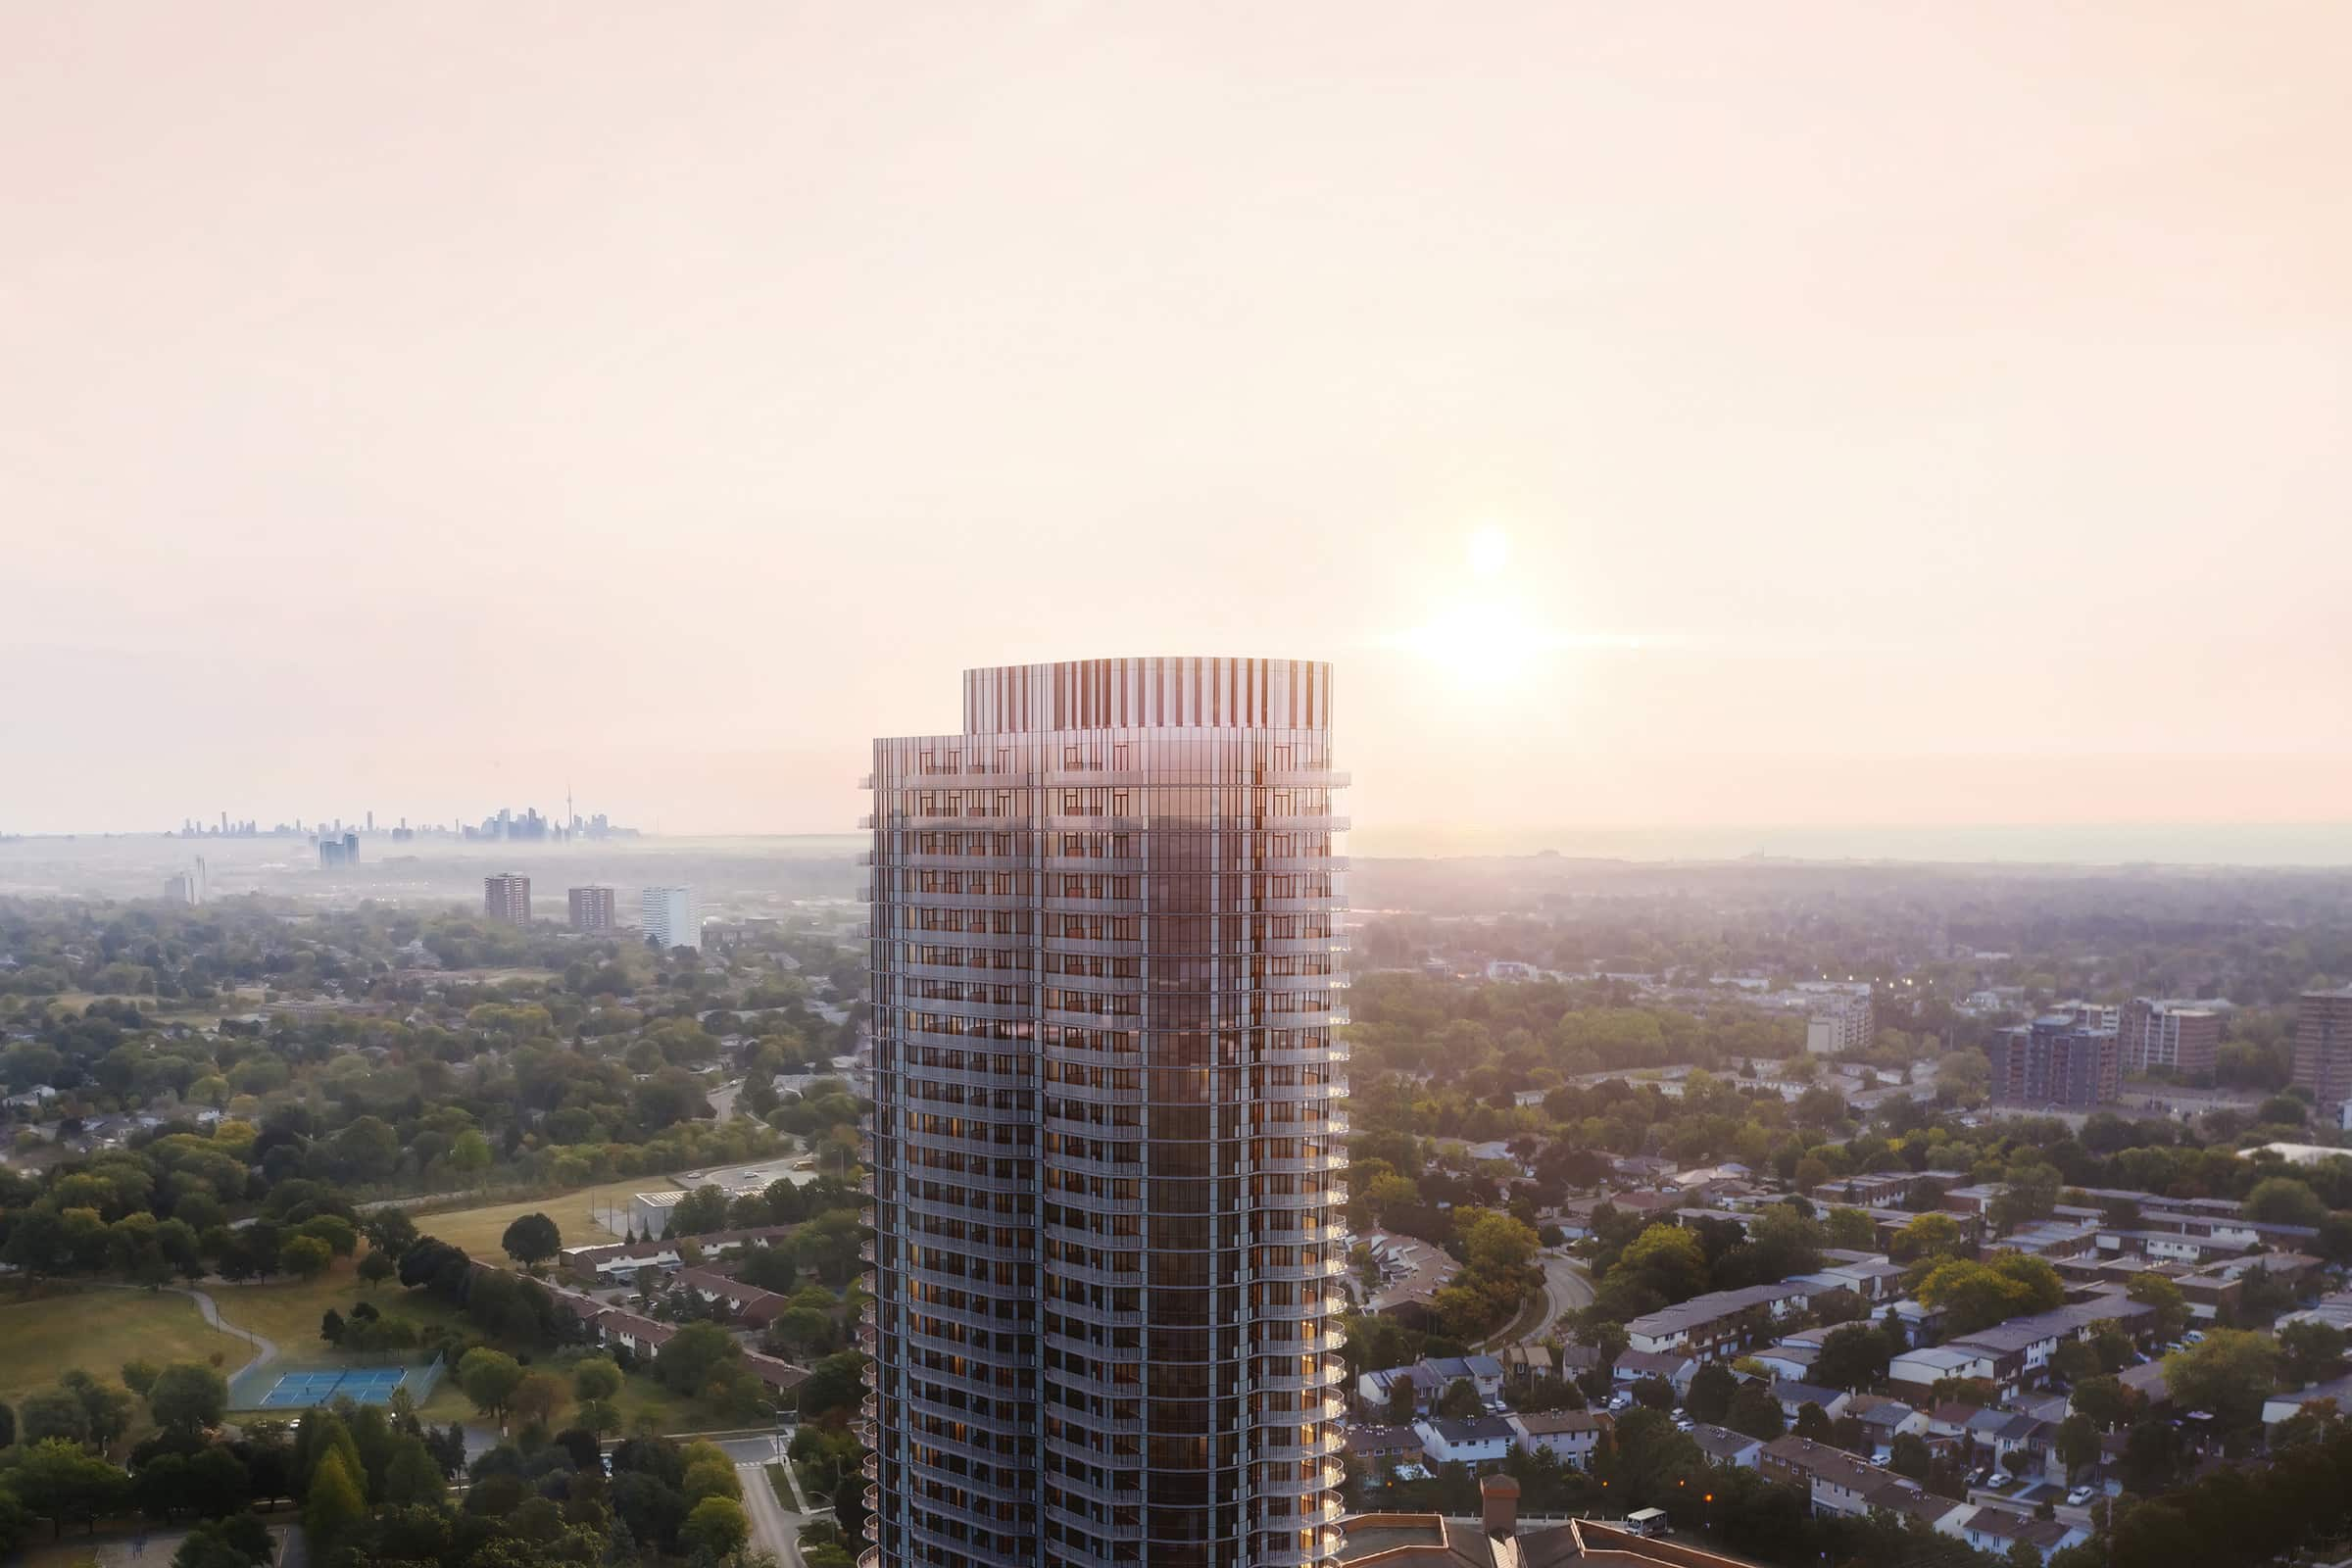 [object object] Downtown Mississauga New Condos For Sale alba condos 1 fairview rd e mississauga hurontario lrt